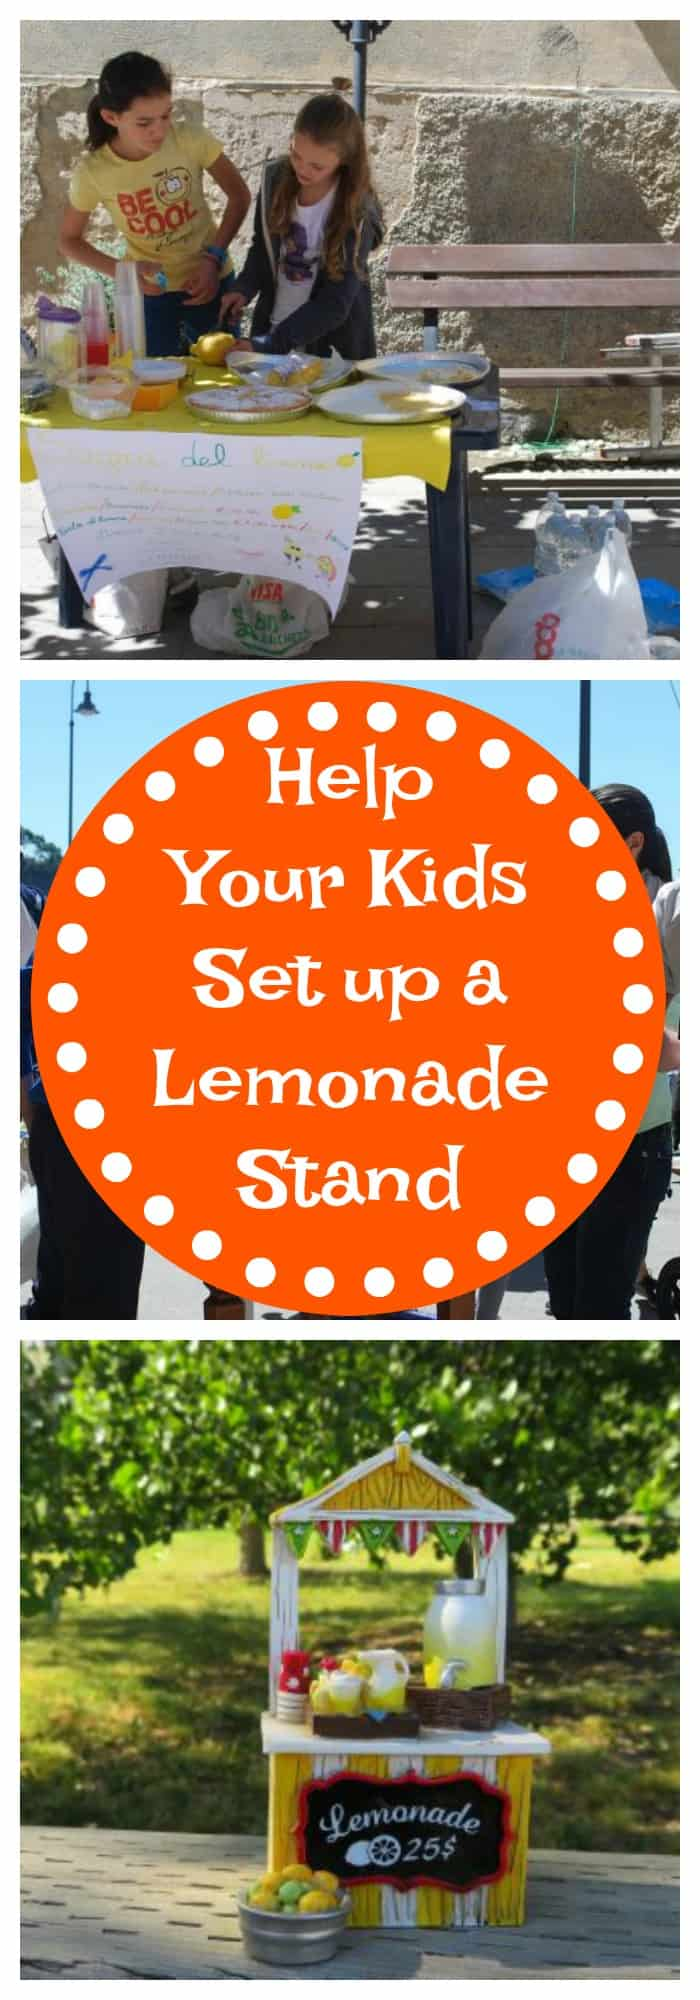 Help Your Kids Set Up a Lemonade Stand